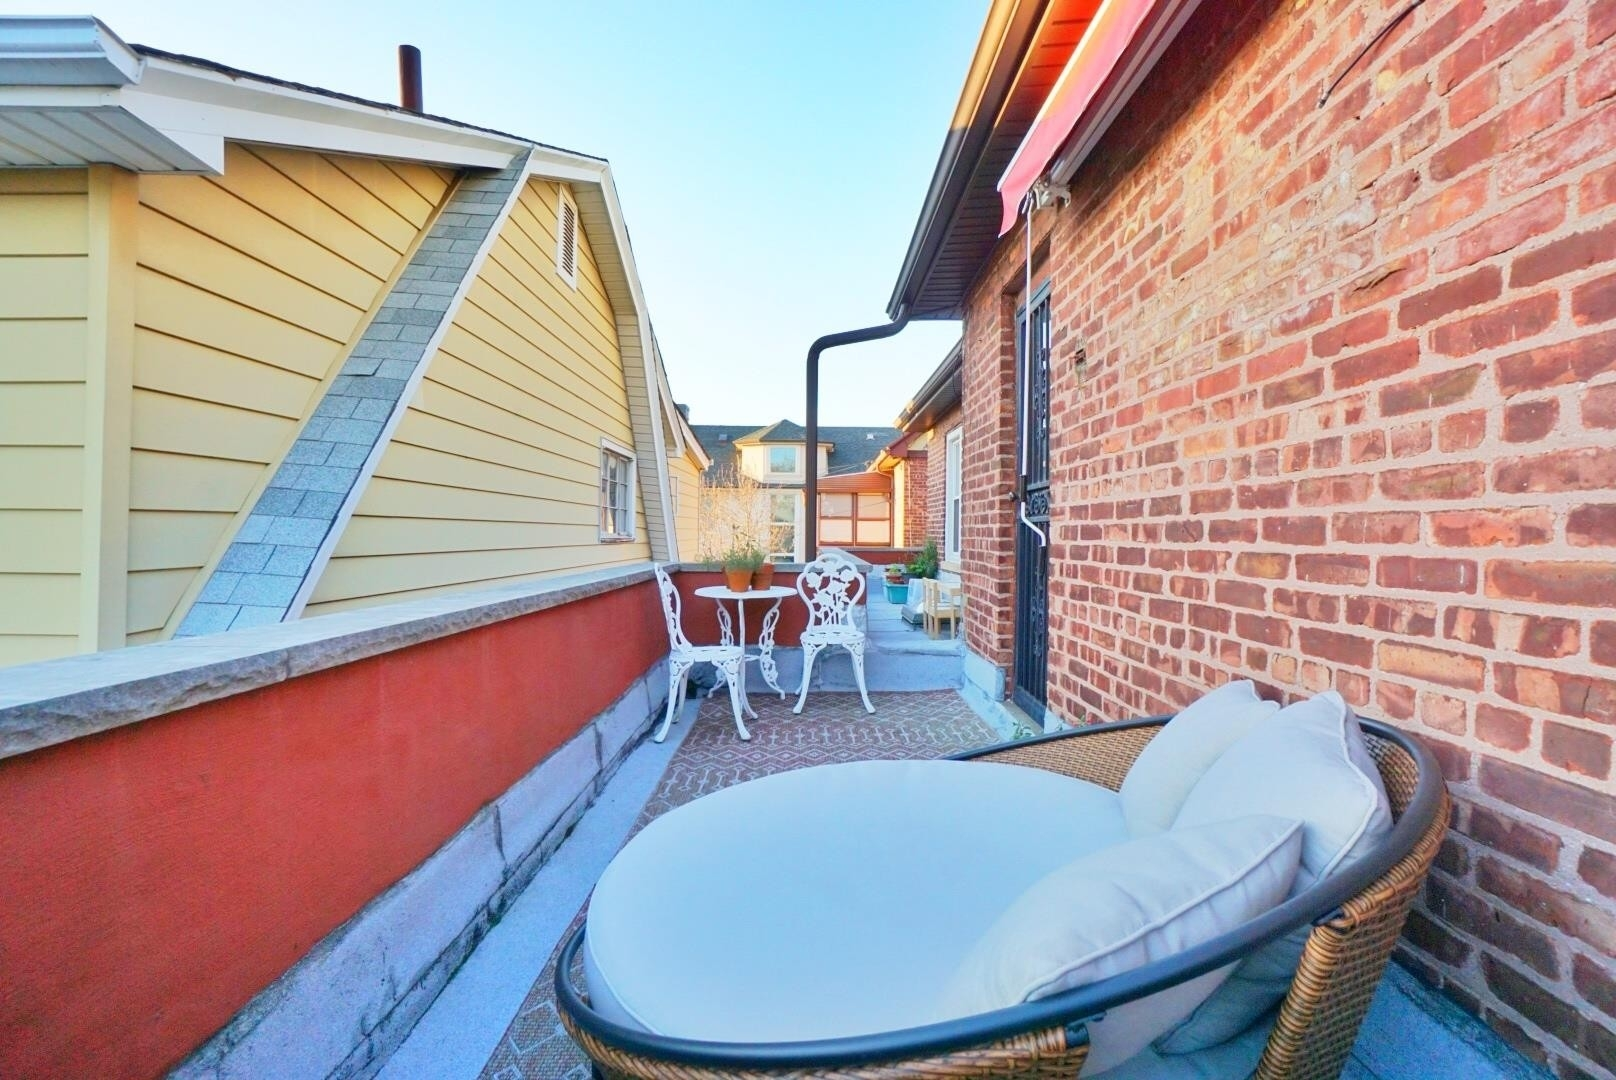 18. Single Family Townhouse for Sale at 1684 RYDER ST , TOWNHOUSE Marine Park, Brooklyn, NY 11234